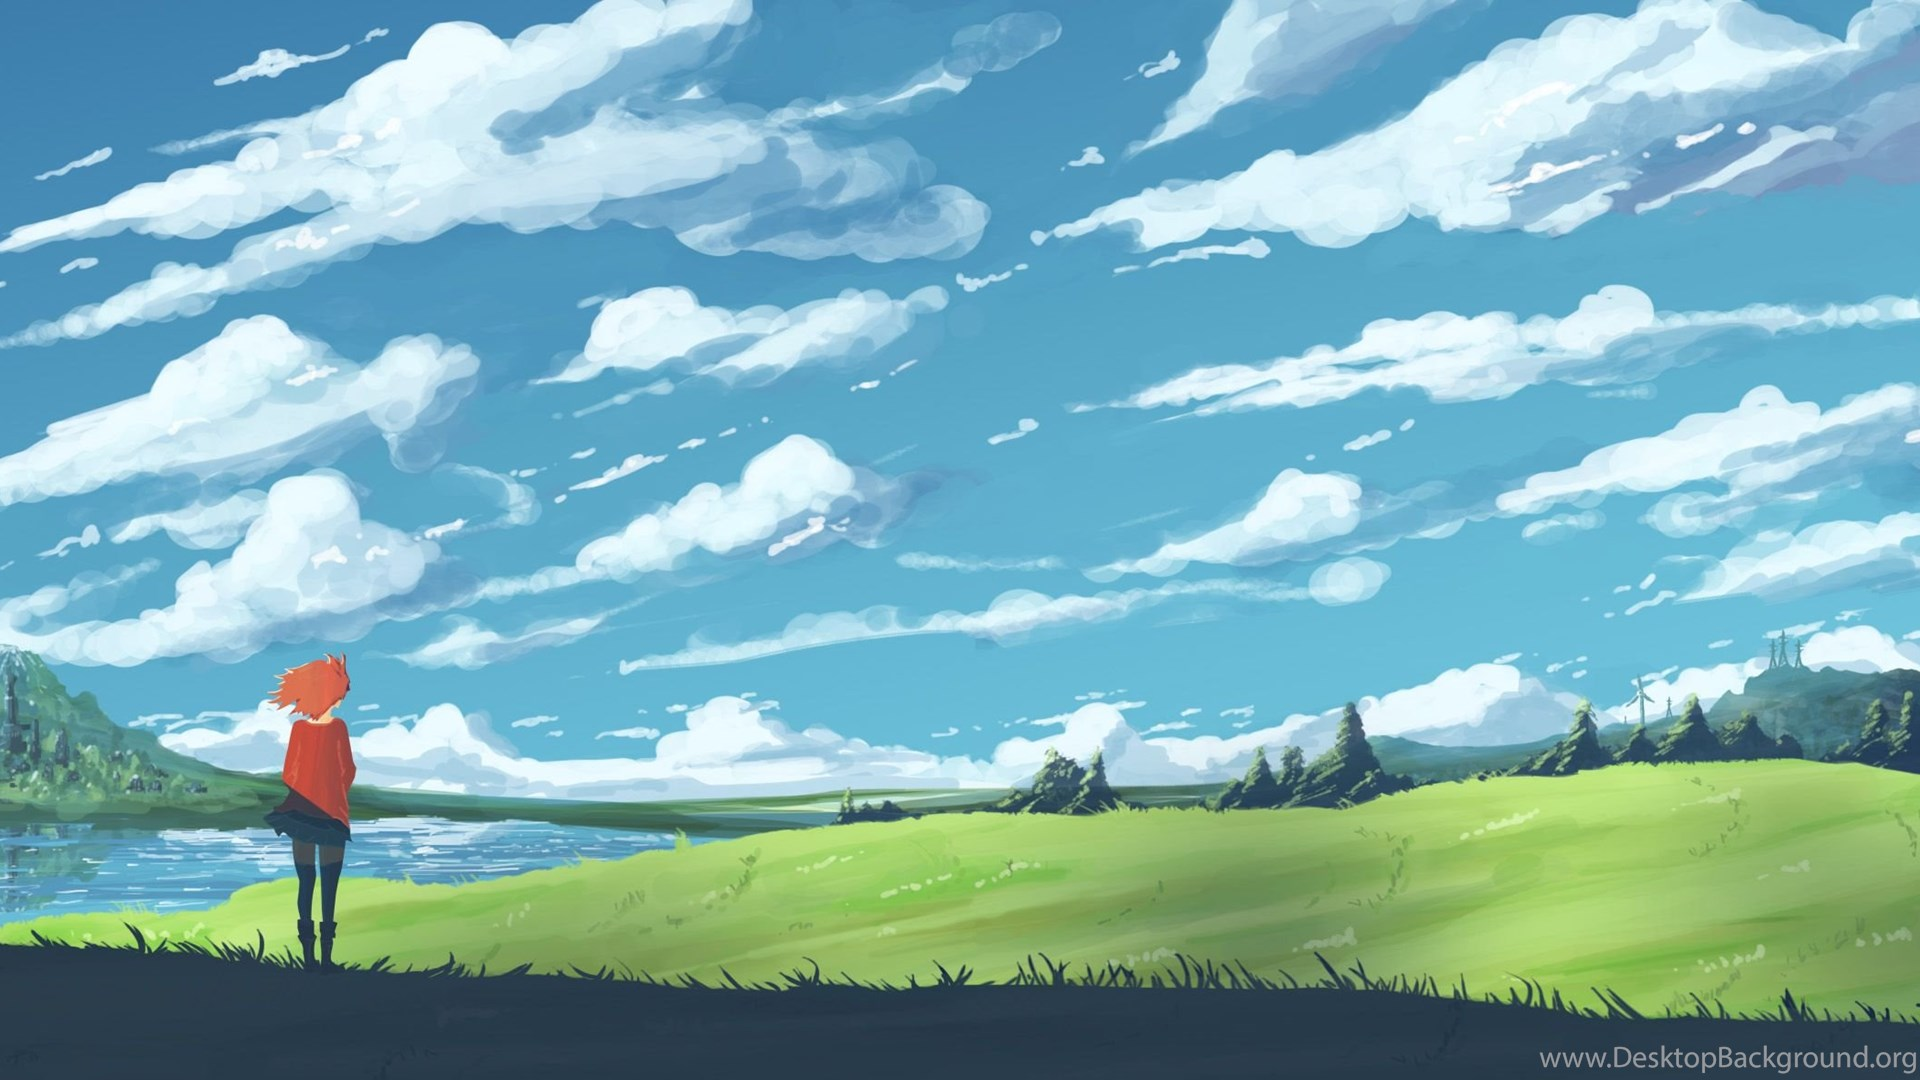 Anime scenery hd wallpapers page 6 desktop background popular voltagebd Choice Image